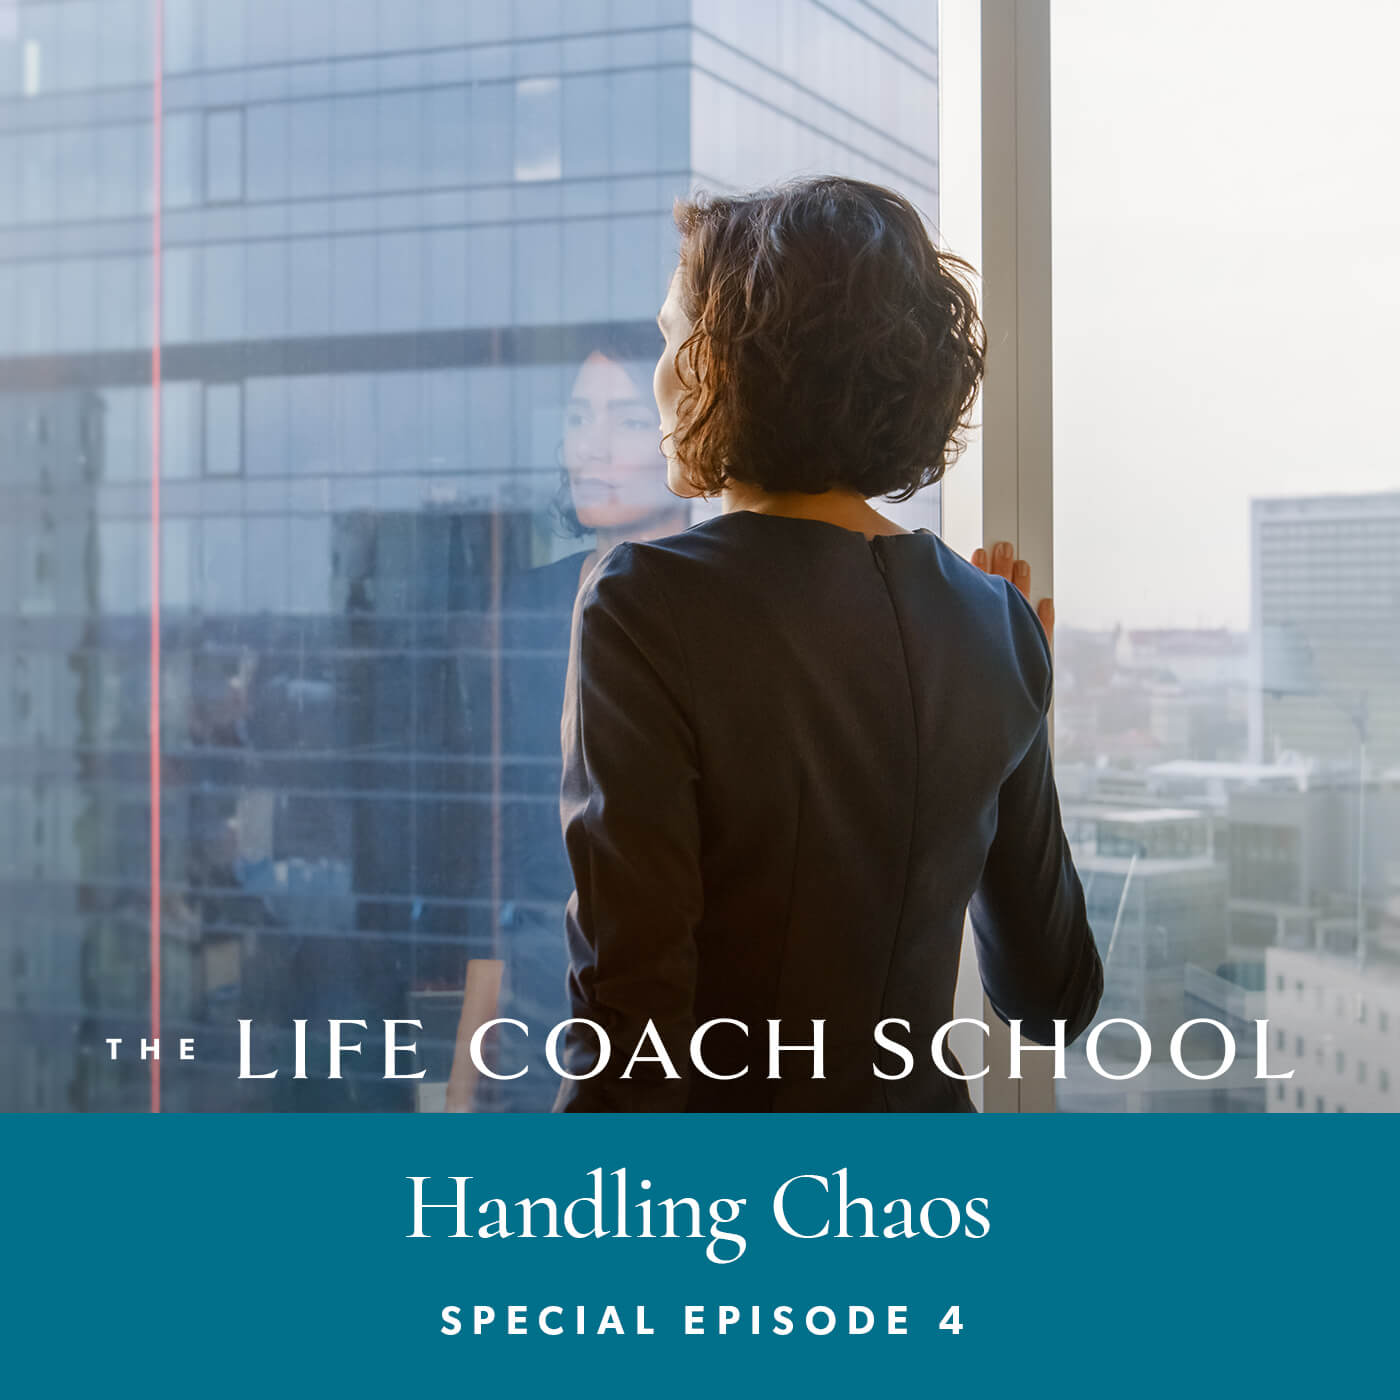 The Life Coach School Podcast with Brooke Castillo | Special Episode | Handling Chaos 4